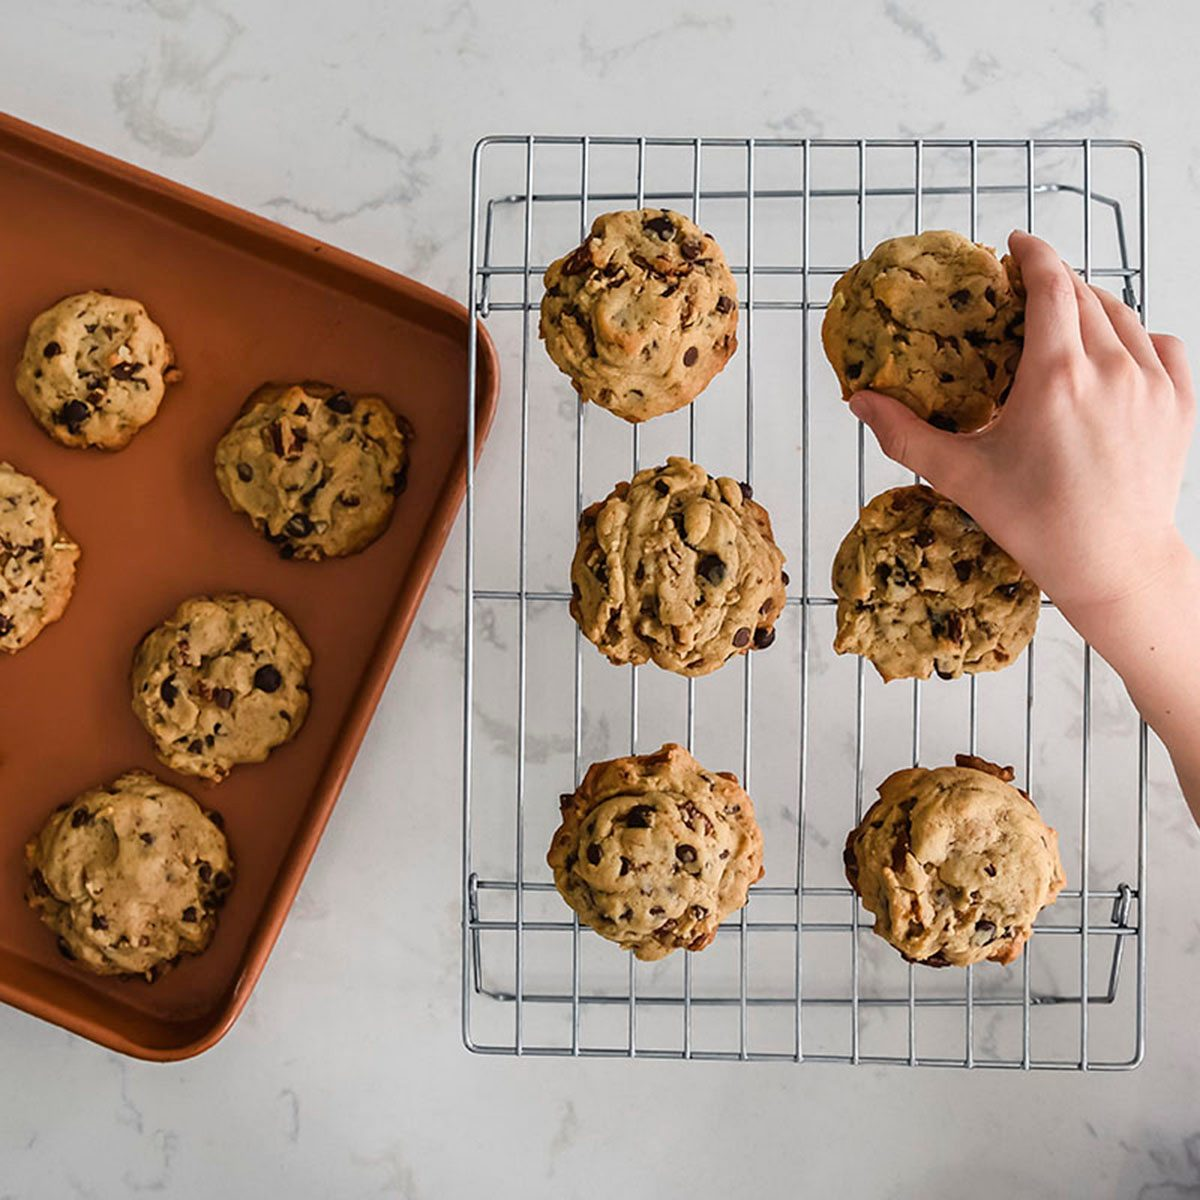 Hand of young child reaching to take a cookie off of a cooling rack